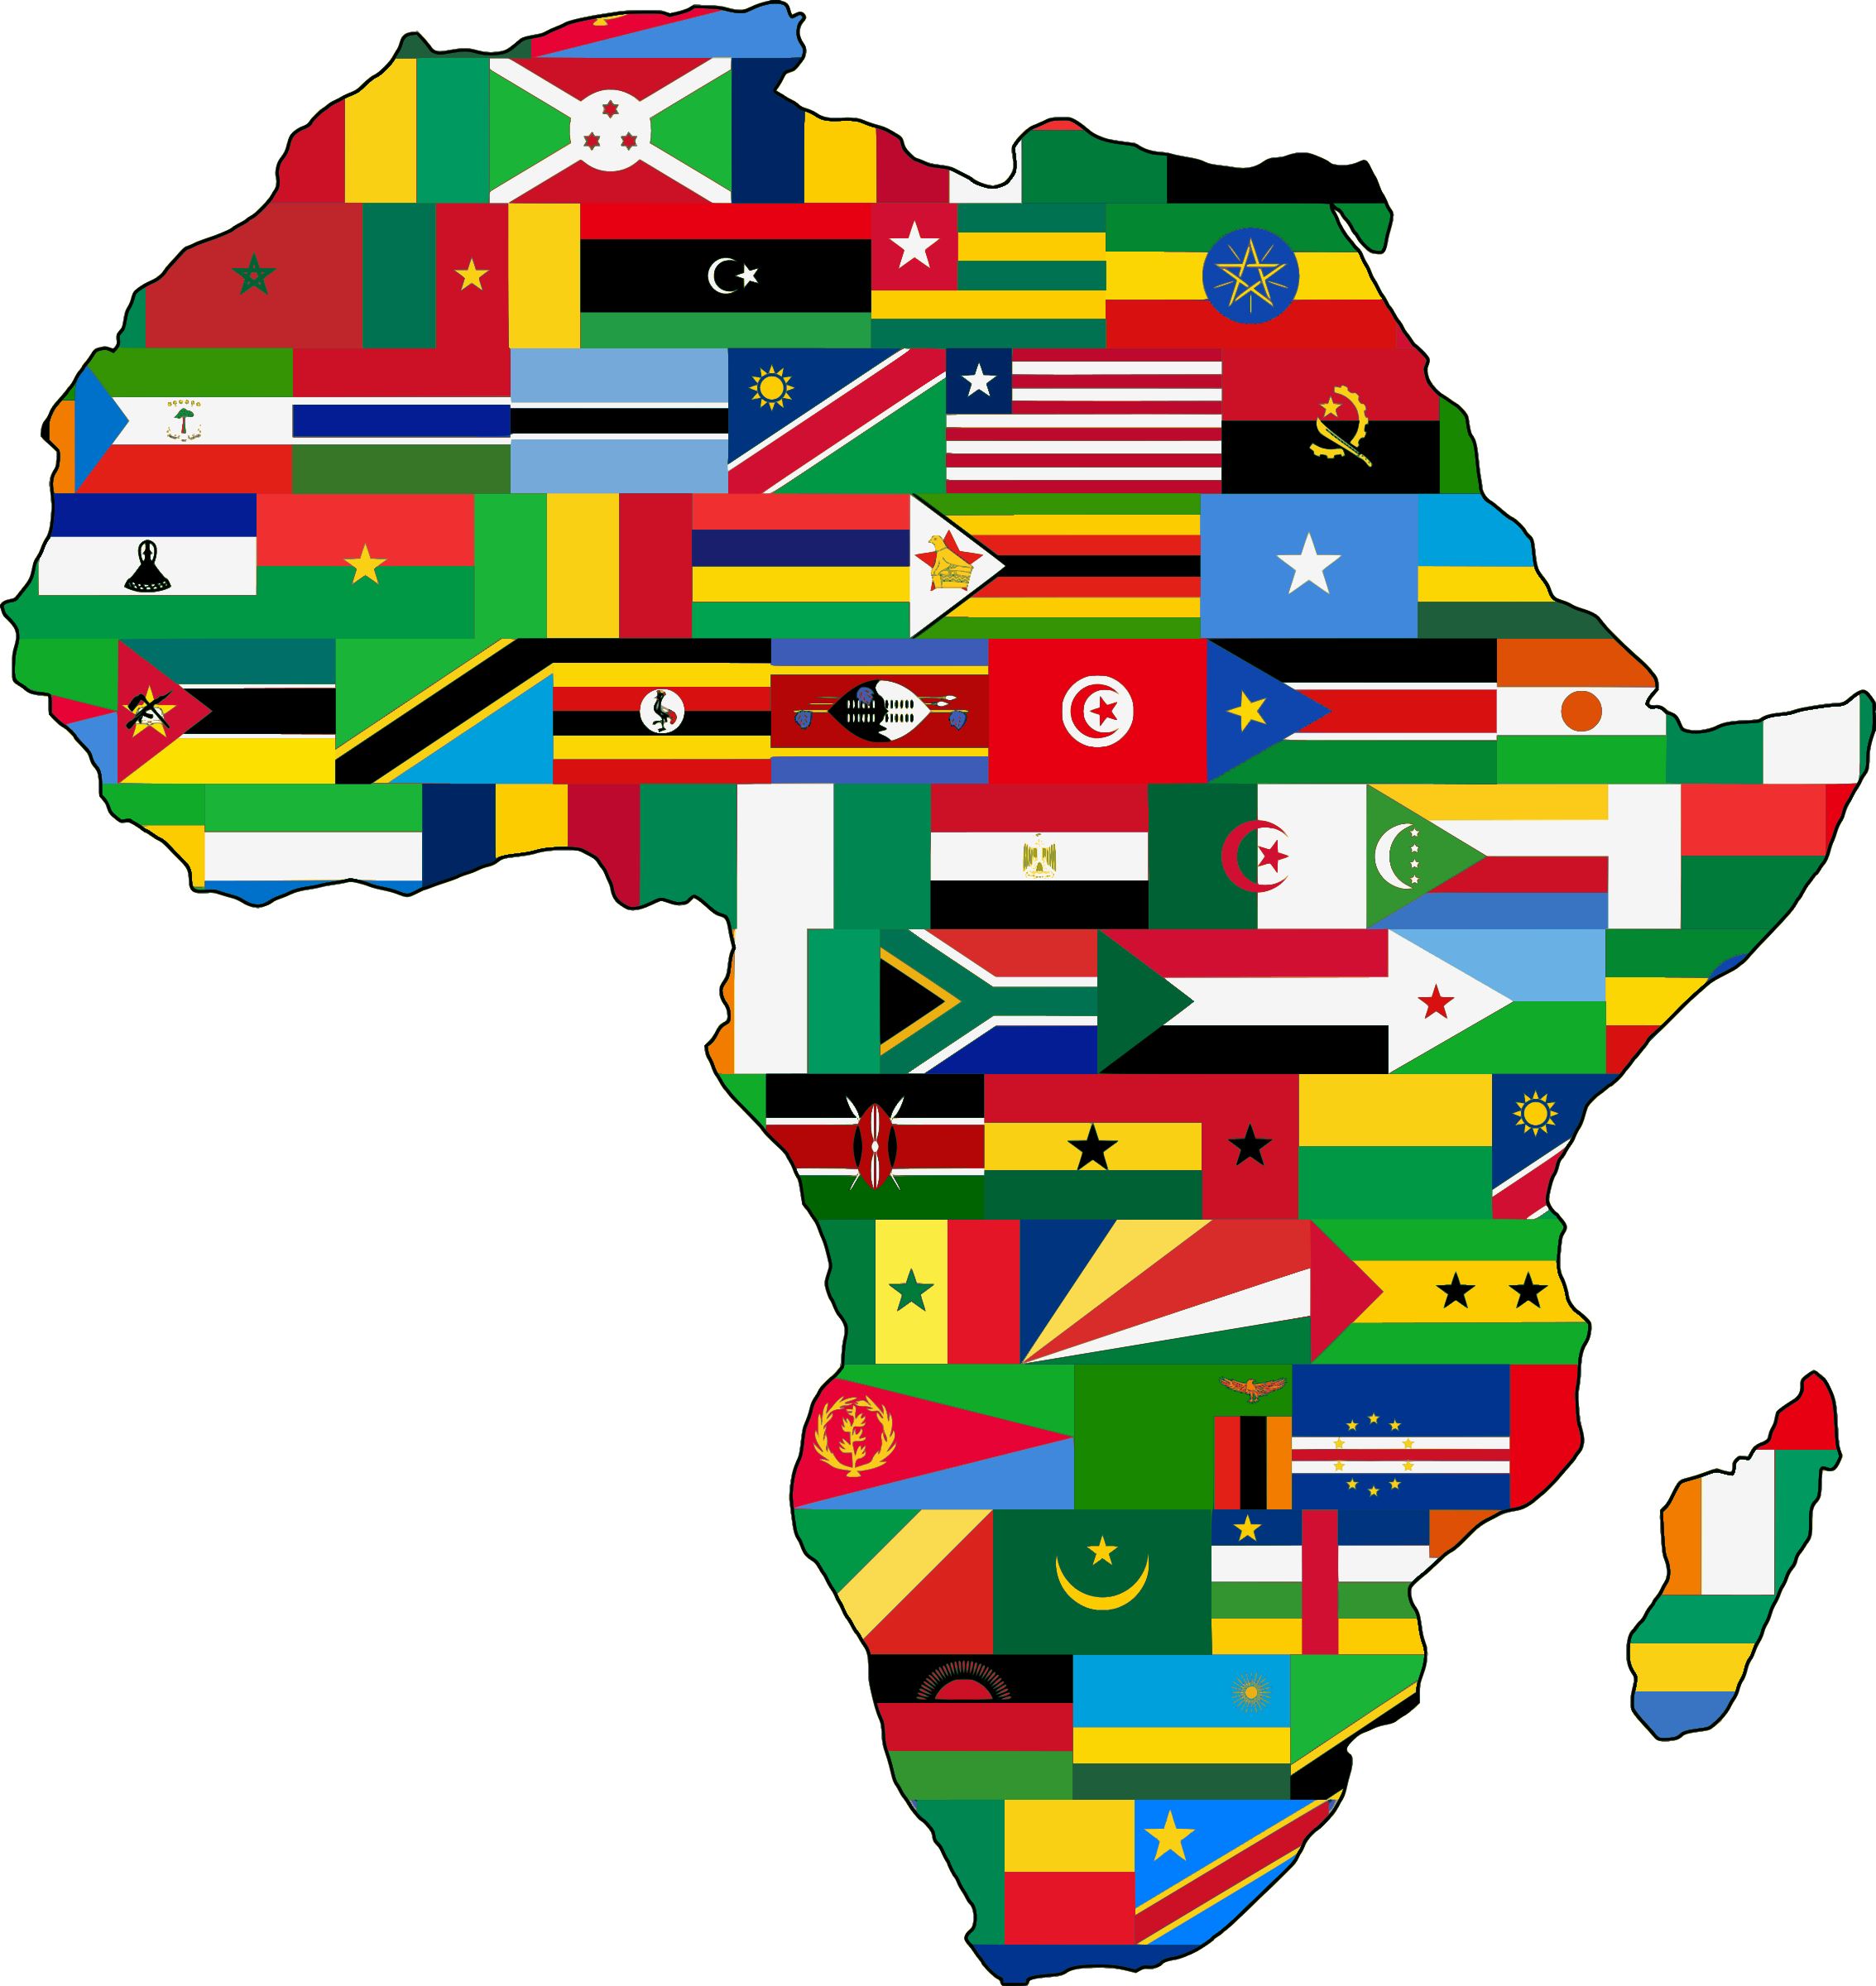 Africa flags big image. Contractor clipart constuction